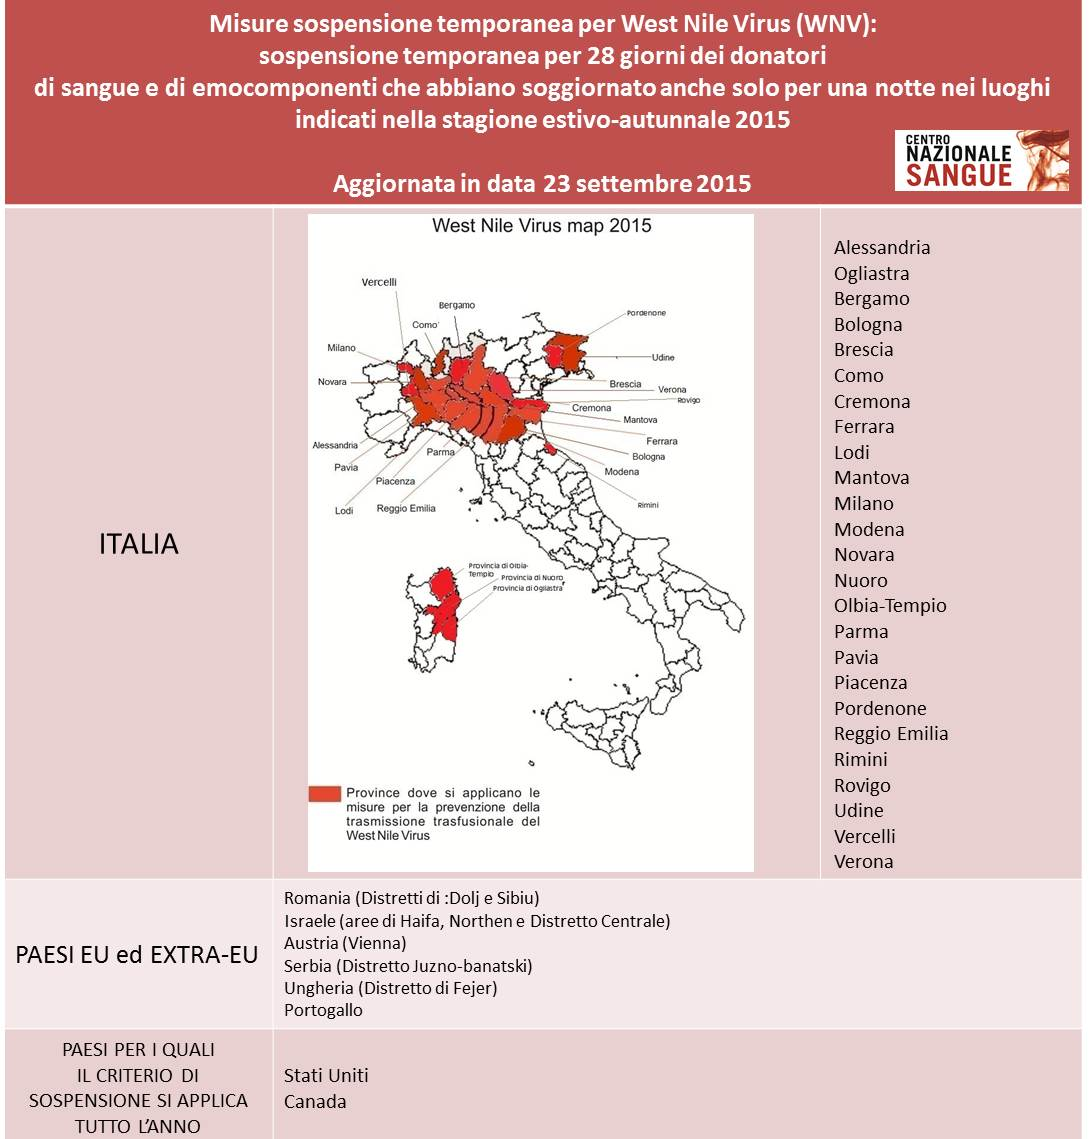 Mappa diffusione in Italia del West Nile Virus